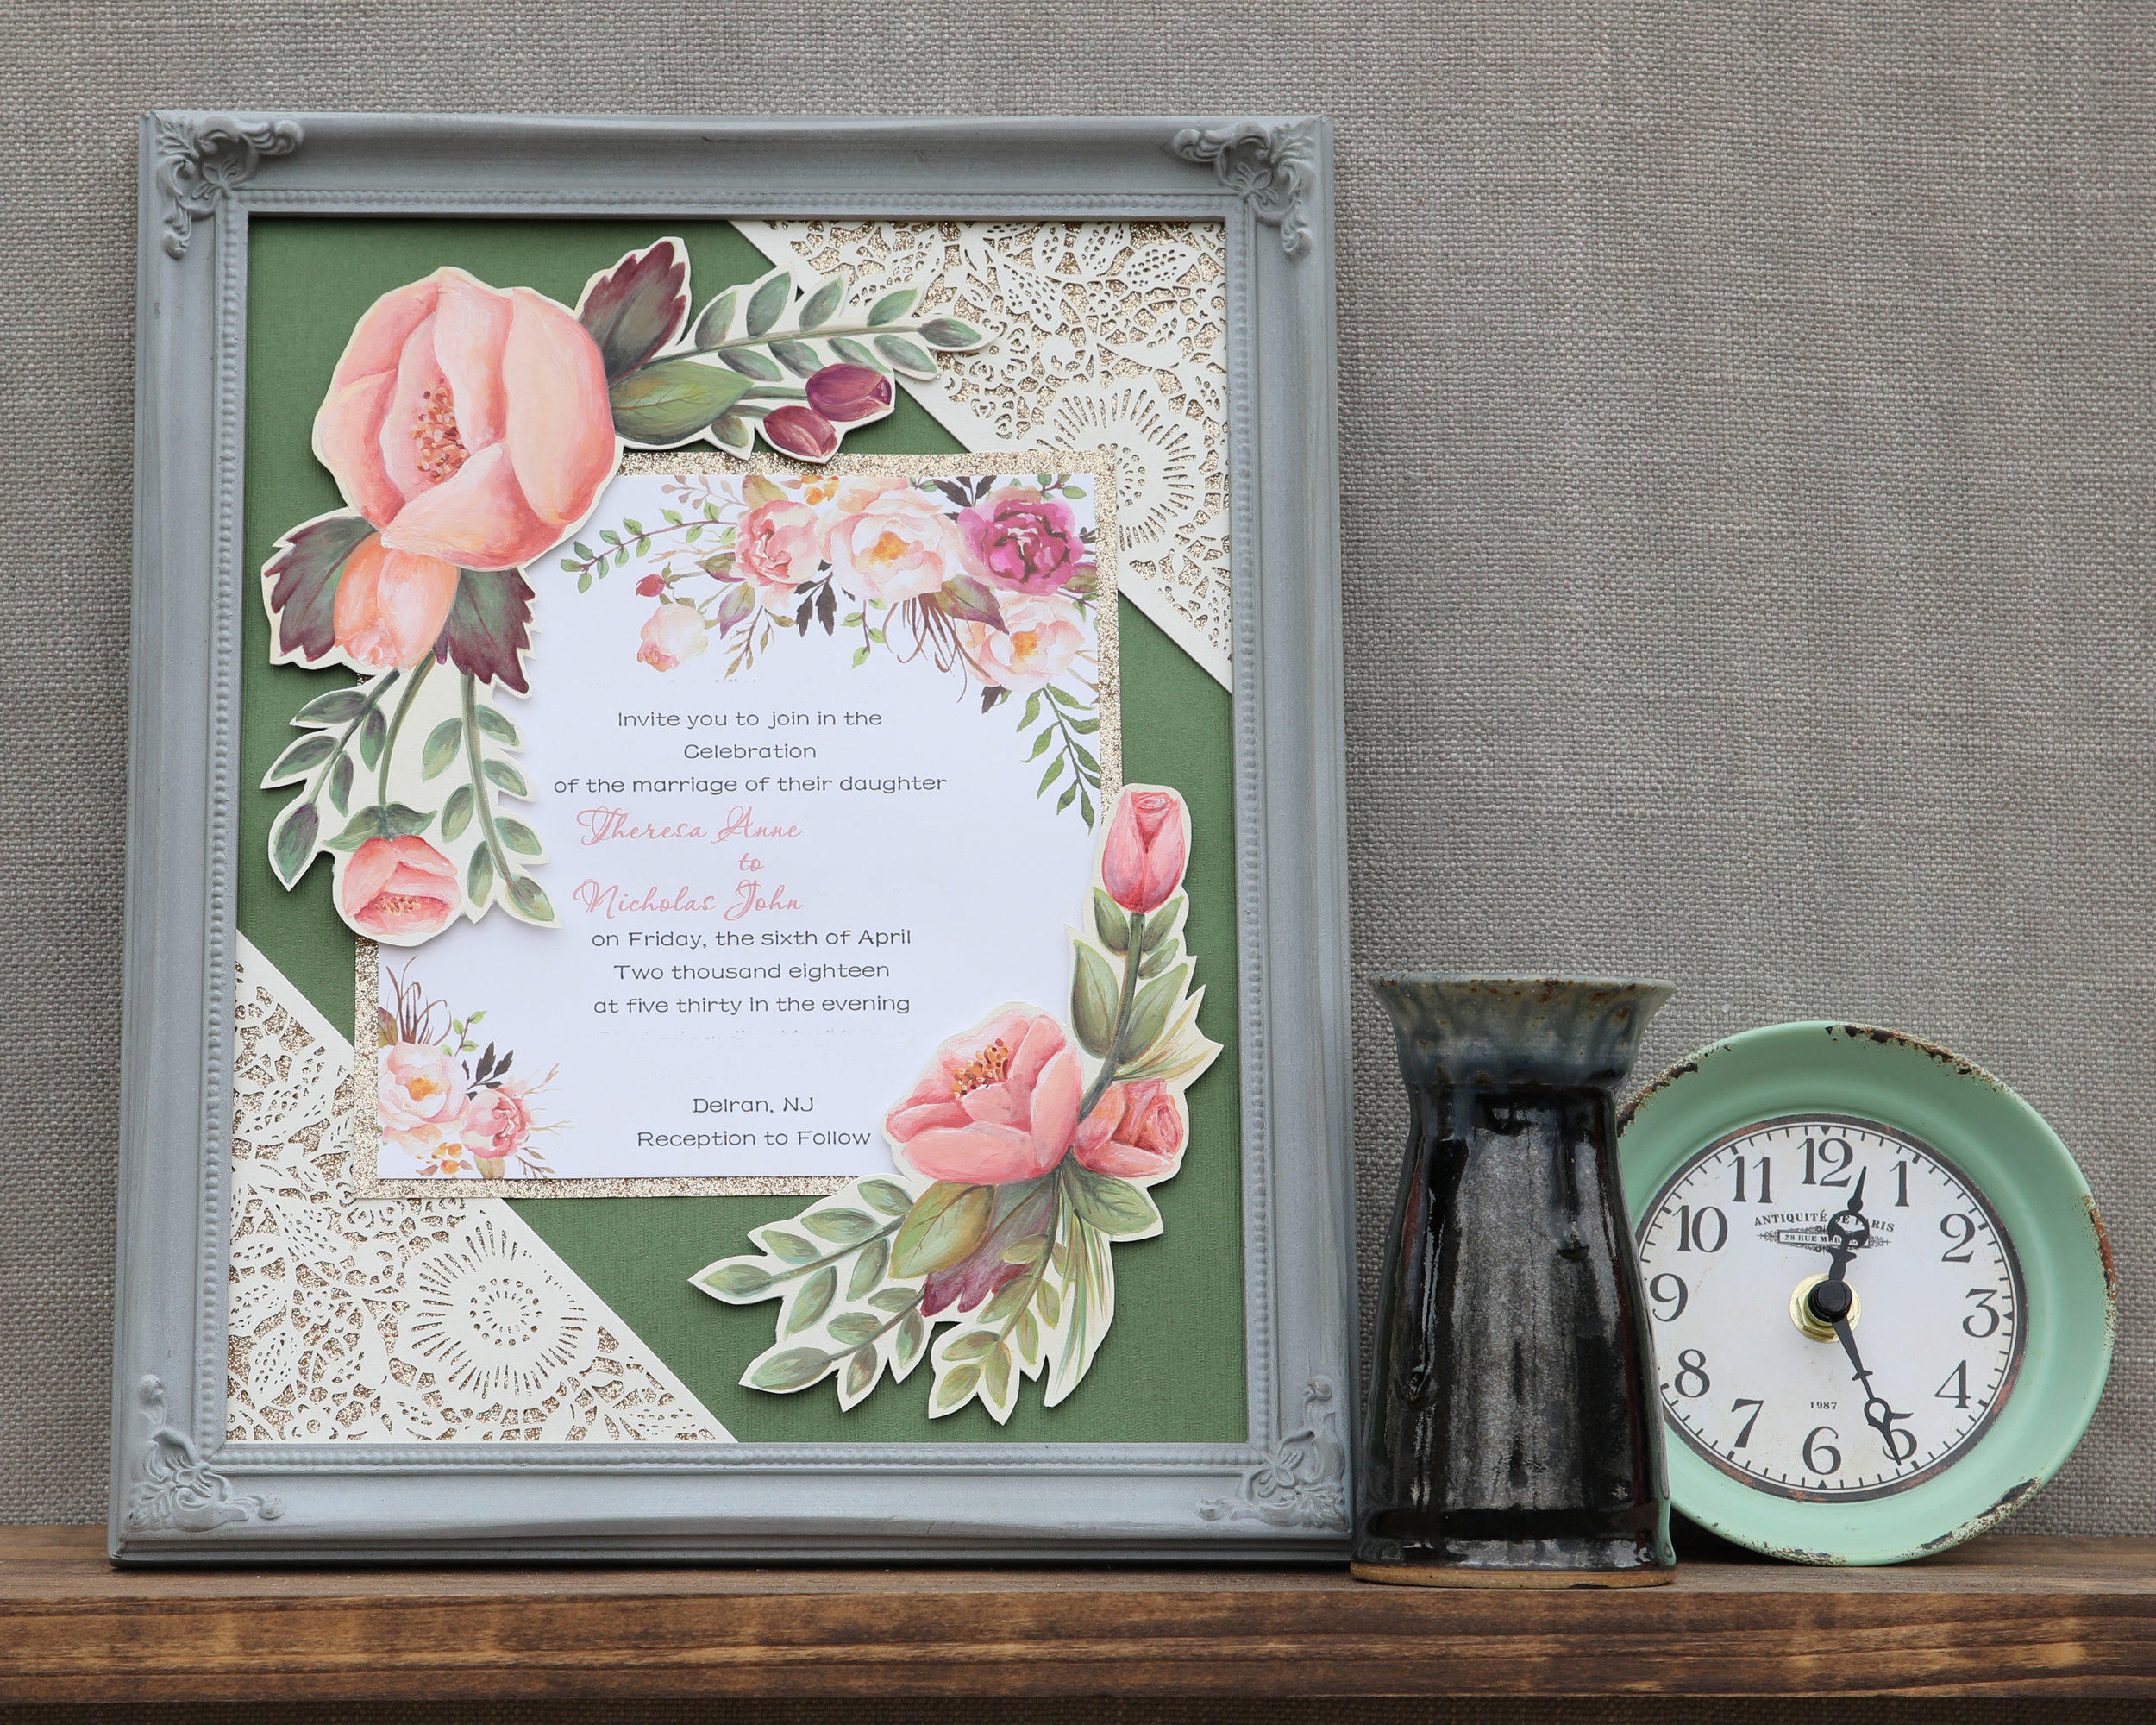 _floral invitation keepsake5.jpg